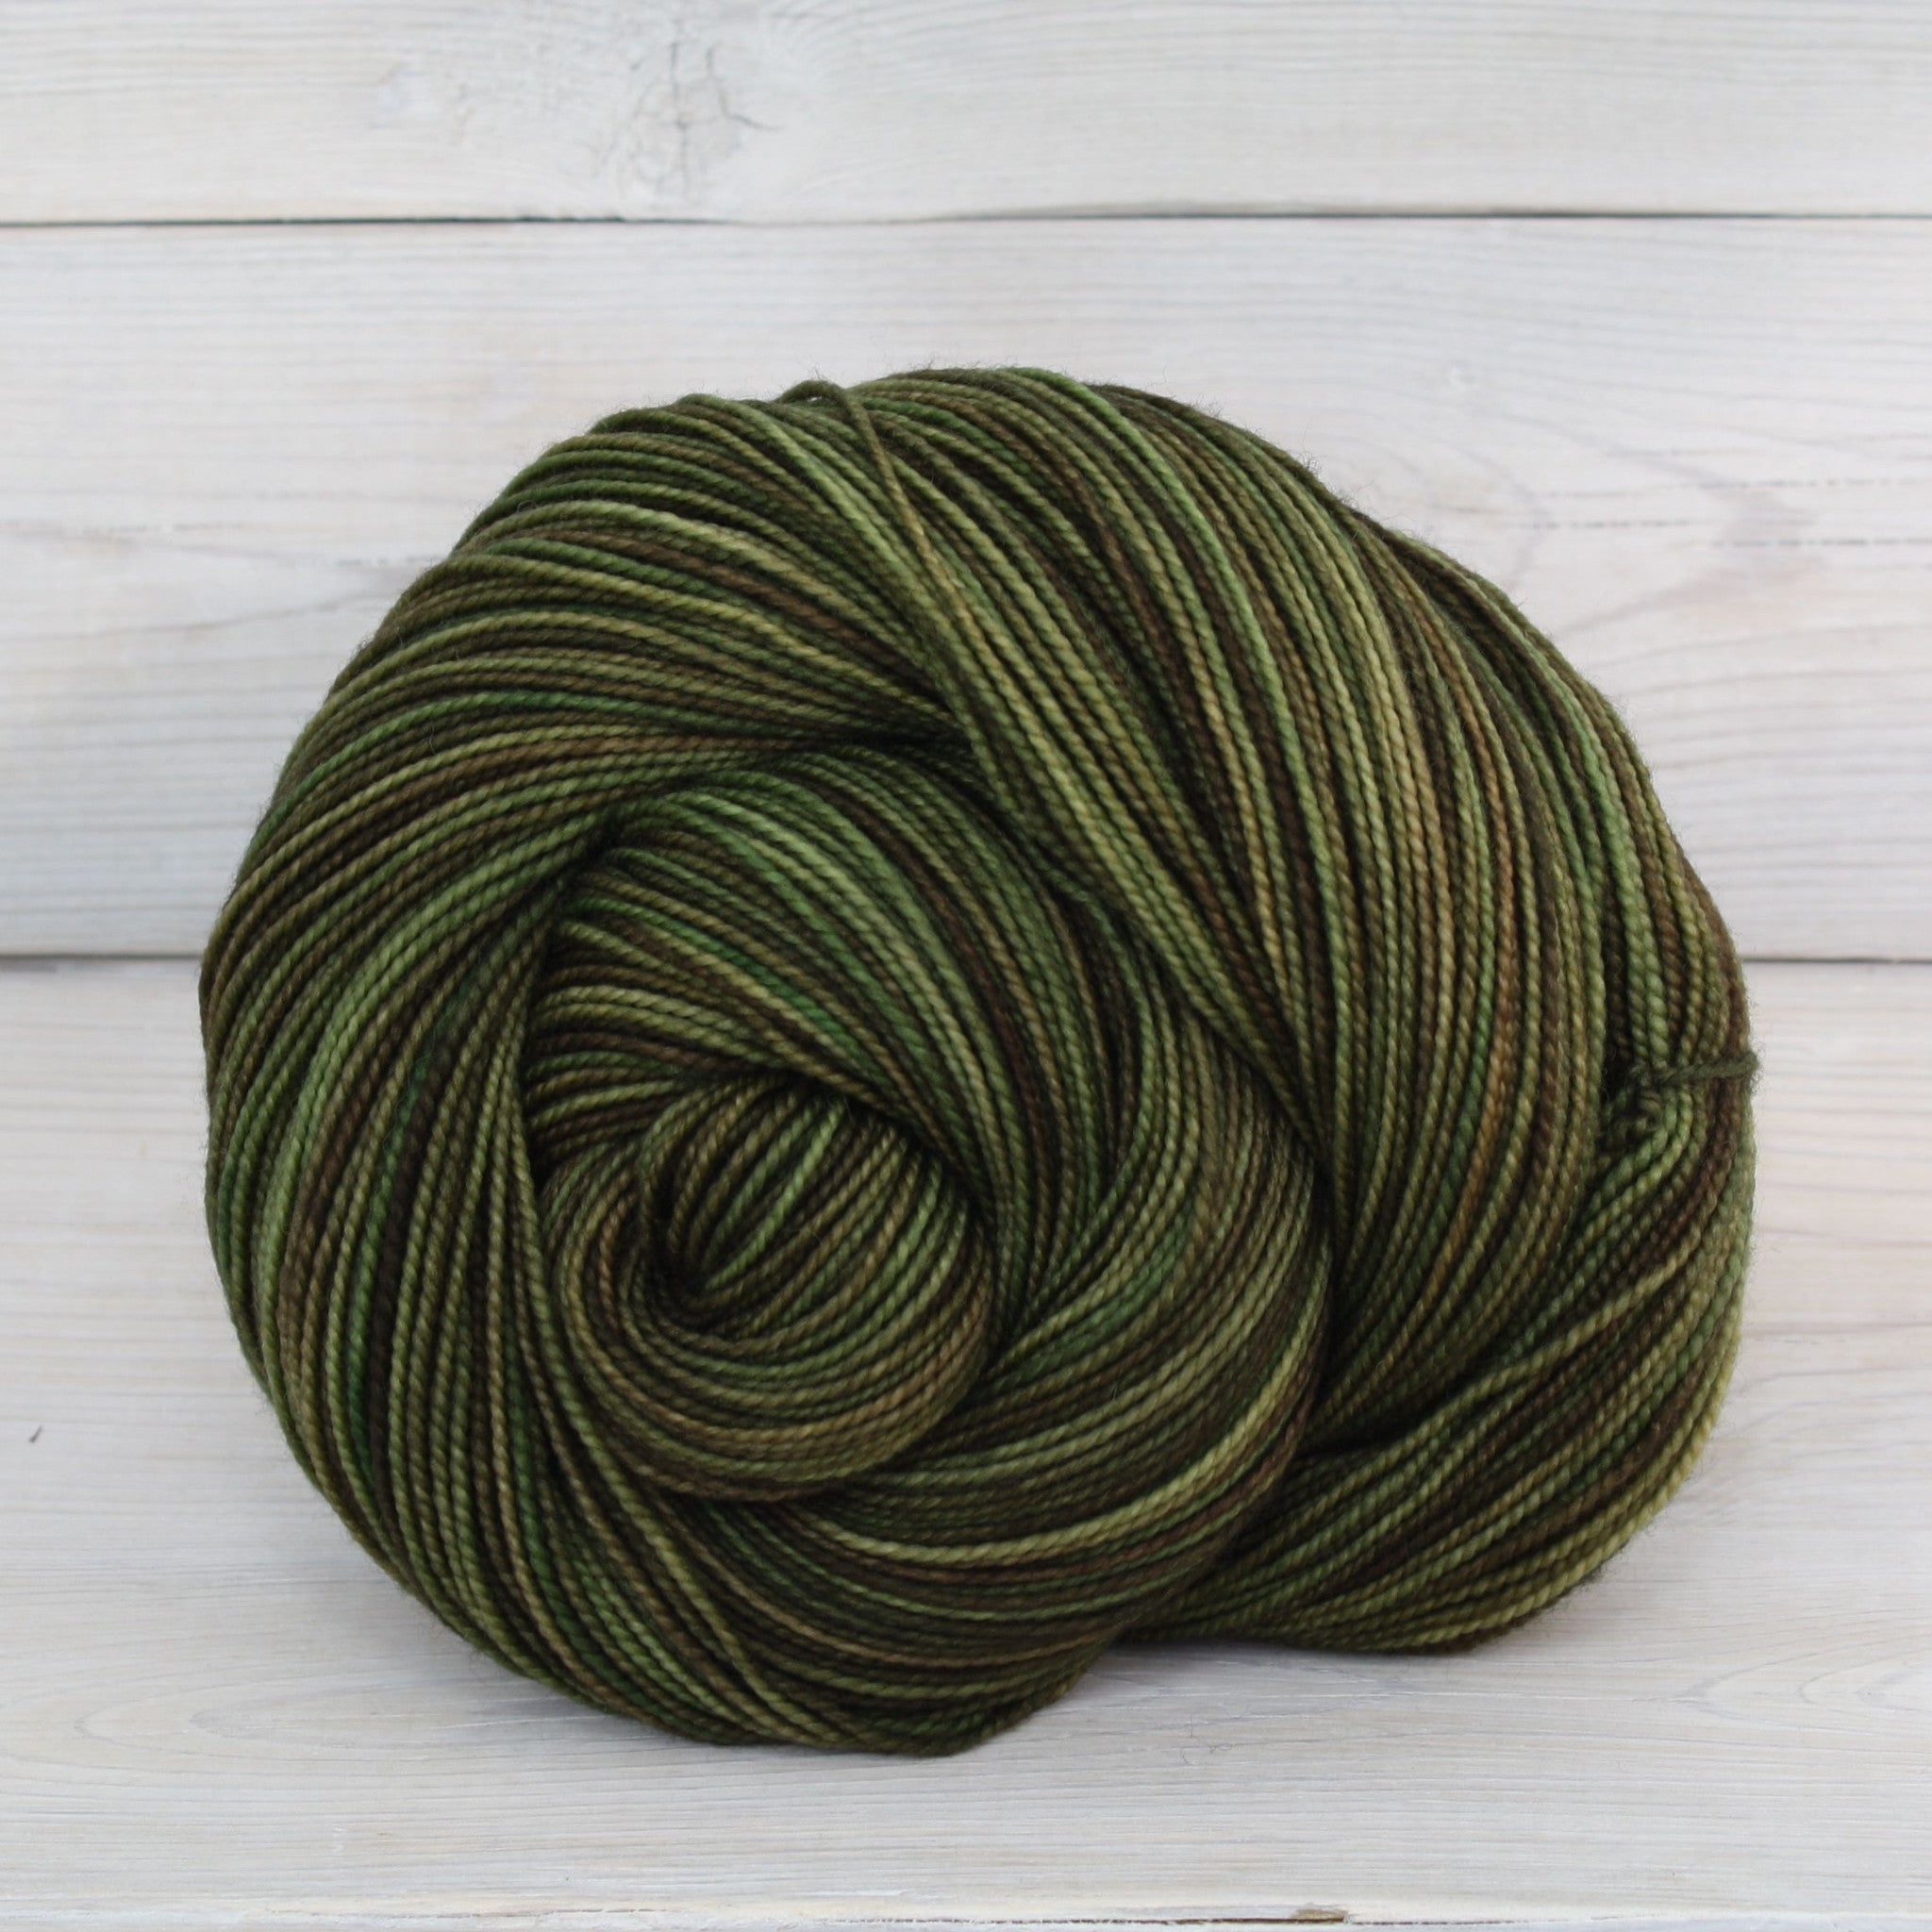 Luna Grey Fiber Arts Celeste Yarn | Colorway: Camo